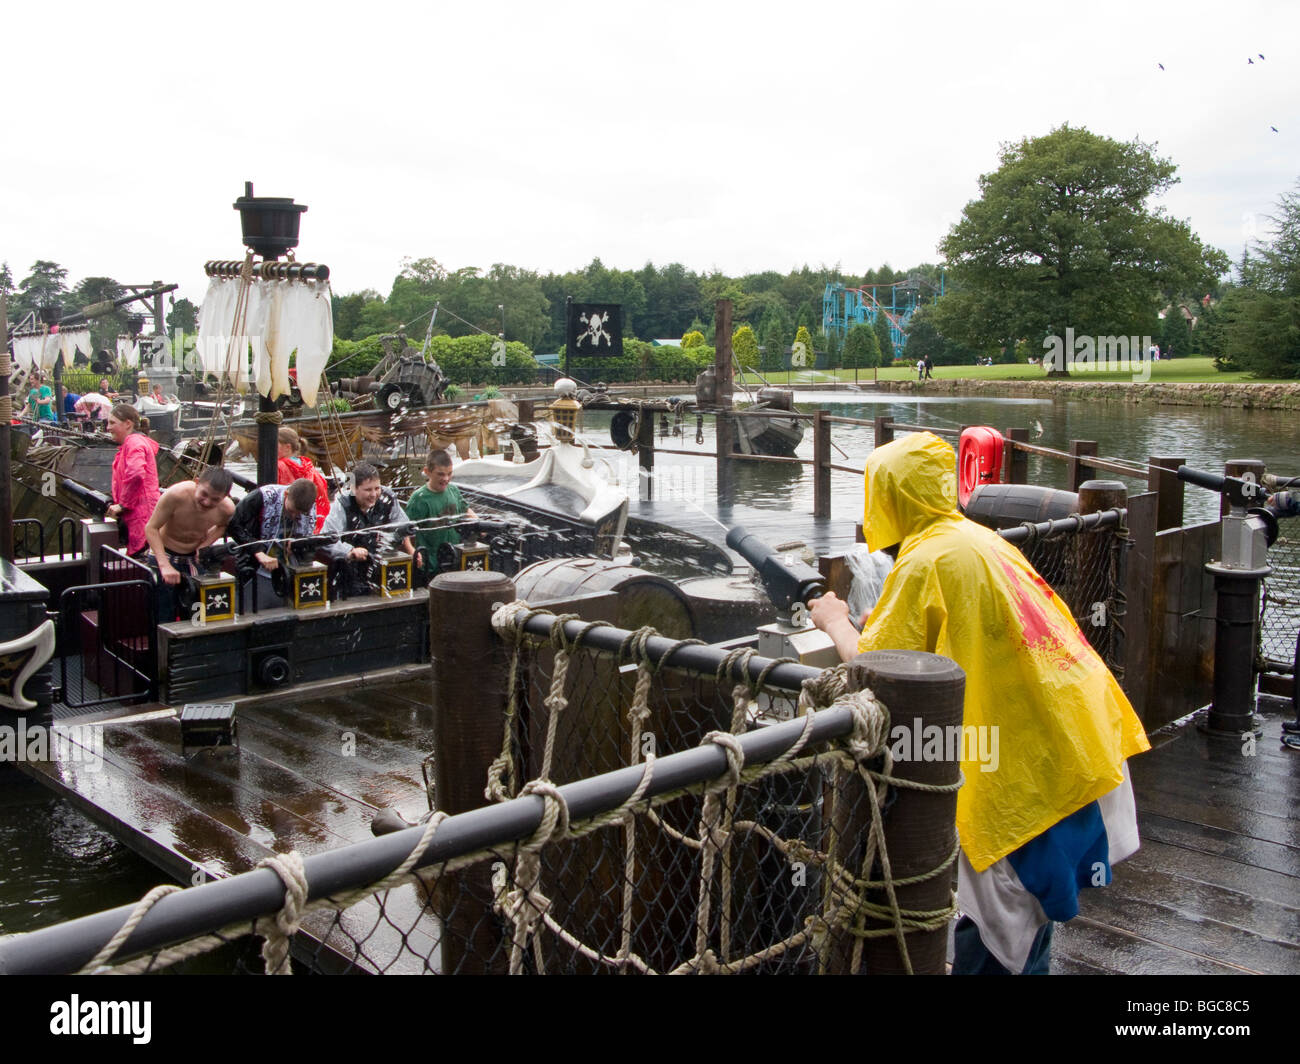 Water fights at Alton Towers, UK - Stock Image